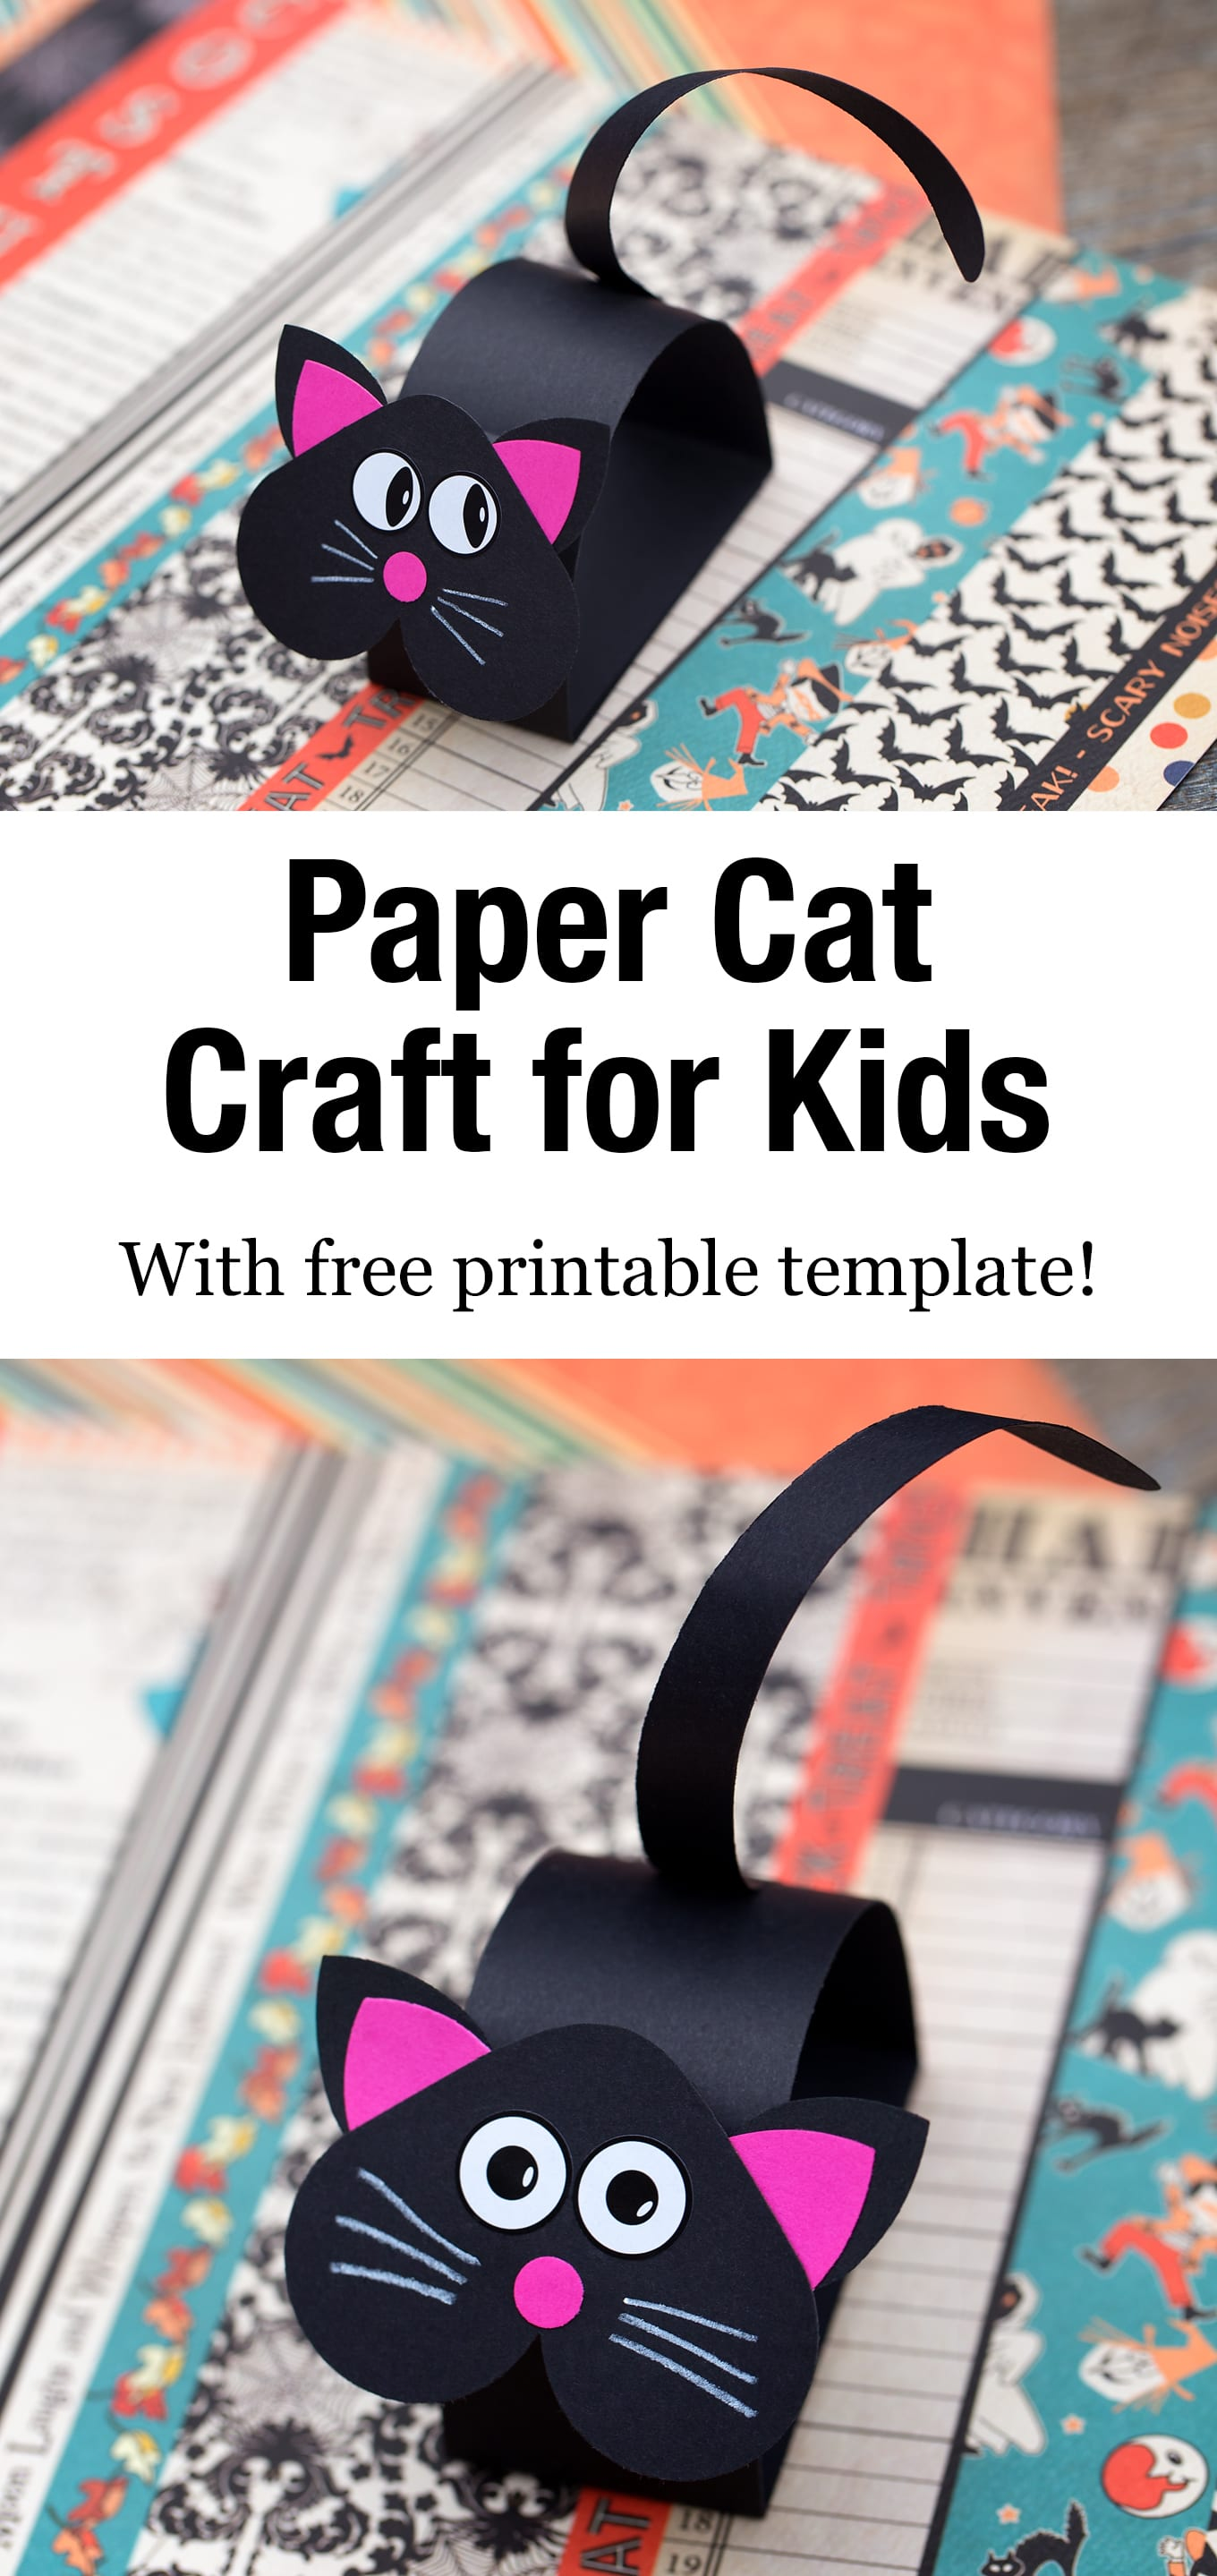 Kids of all ages can learn how to make an easy and fun paper cat craft with our free printable template! #catcraft #papercatcraft #kidscraft #catcraftforkids via @firefliesandmudpies